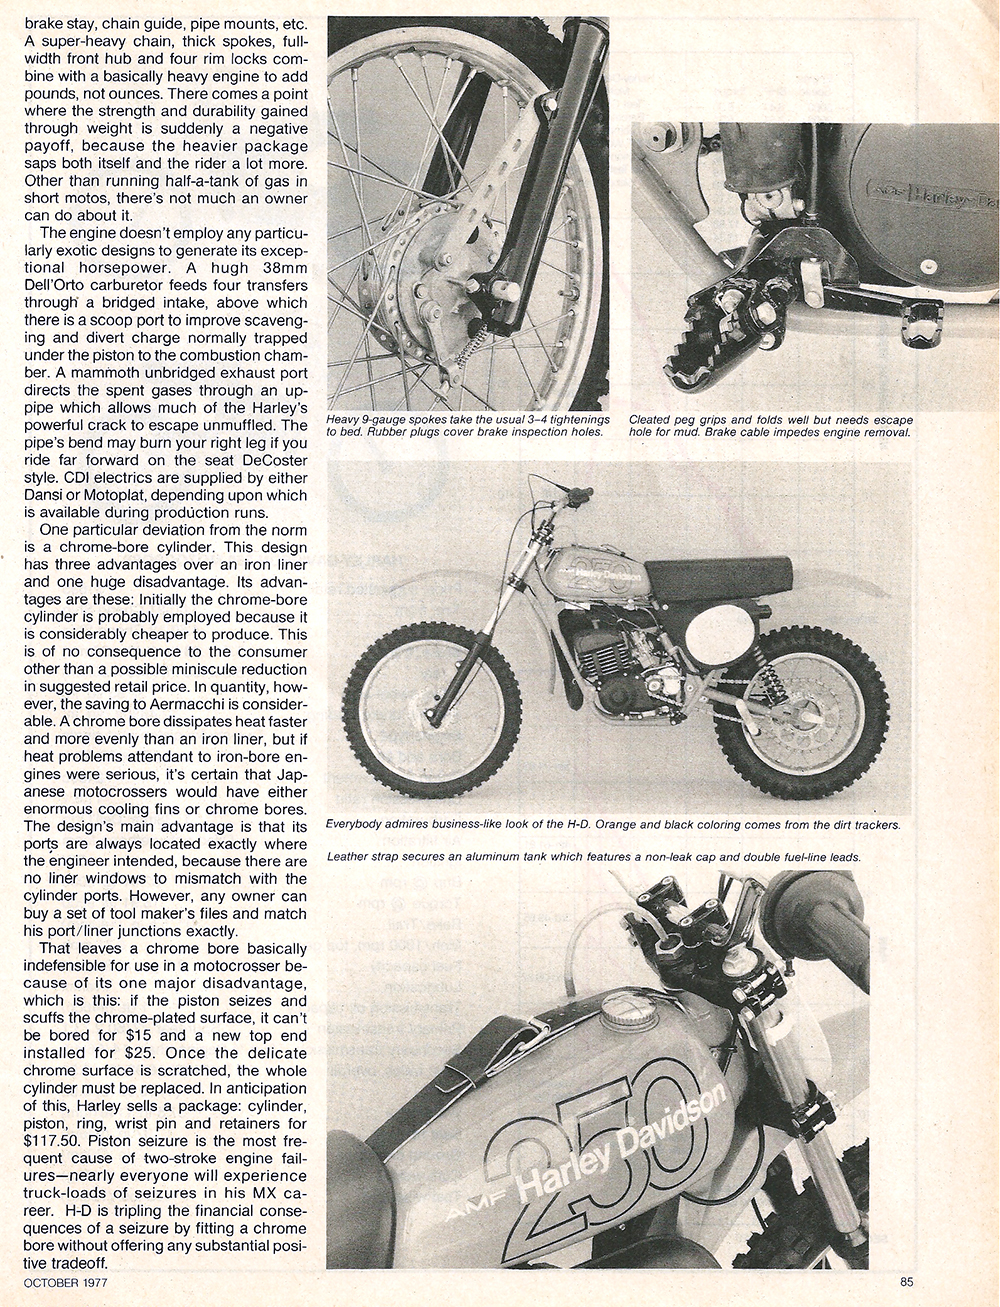 1977 Harley Davidson 250 MX road test 4.jpg